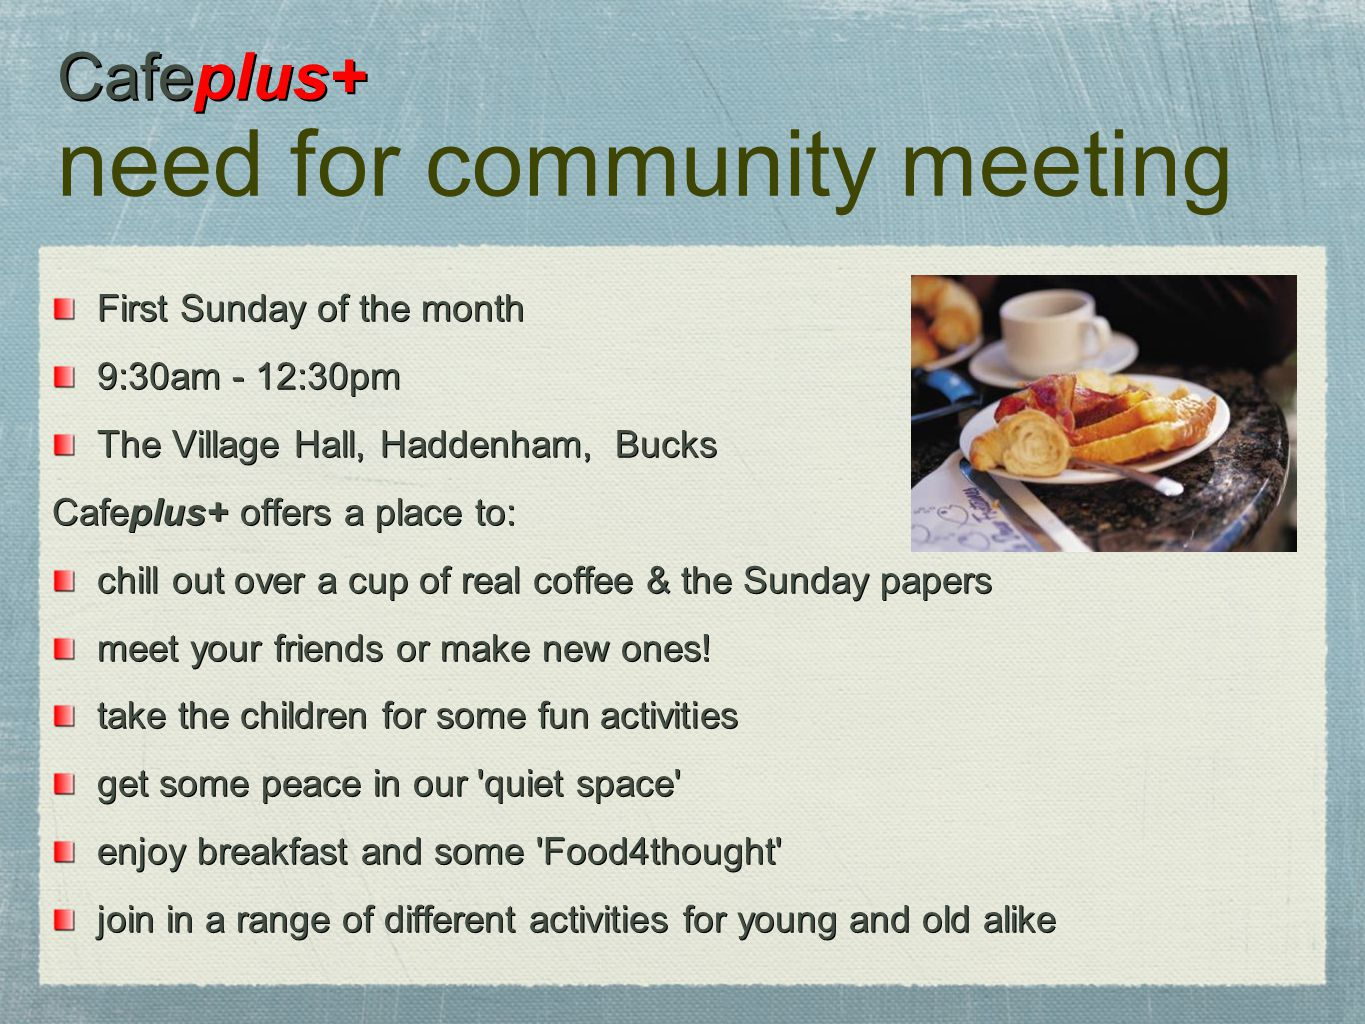 Cafeplus+ need for community meeting